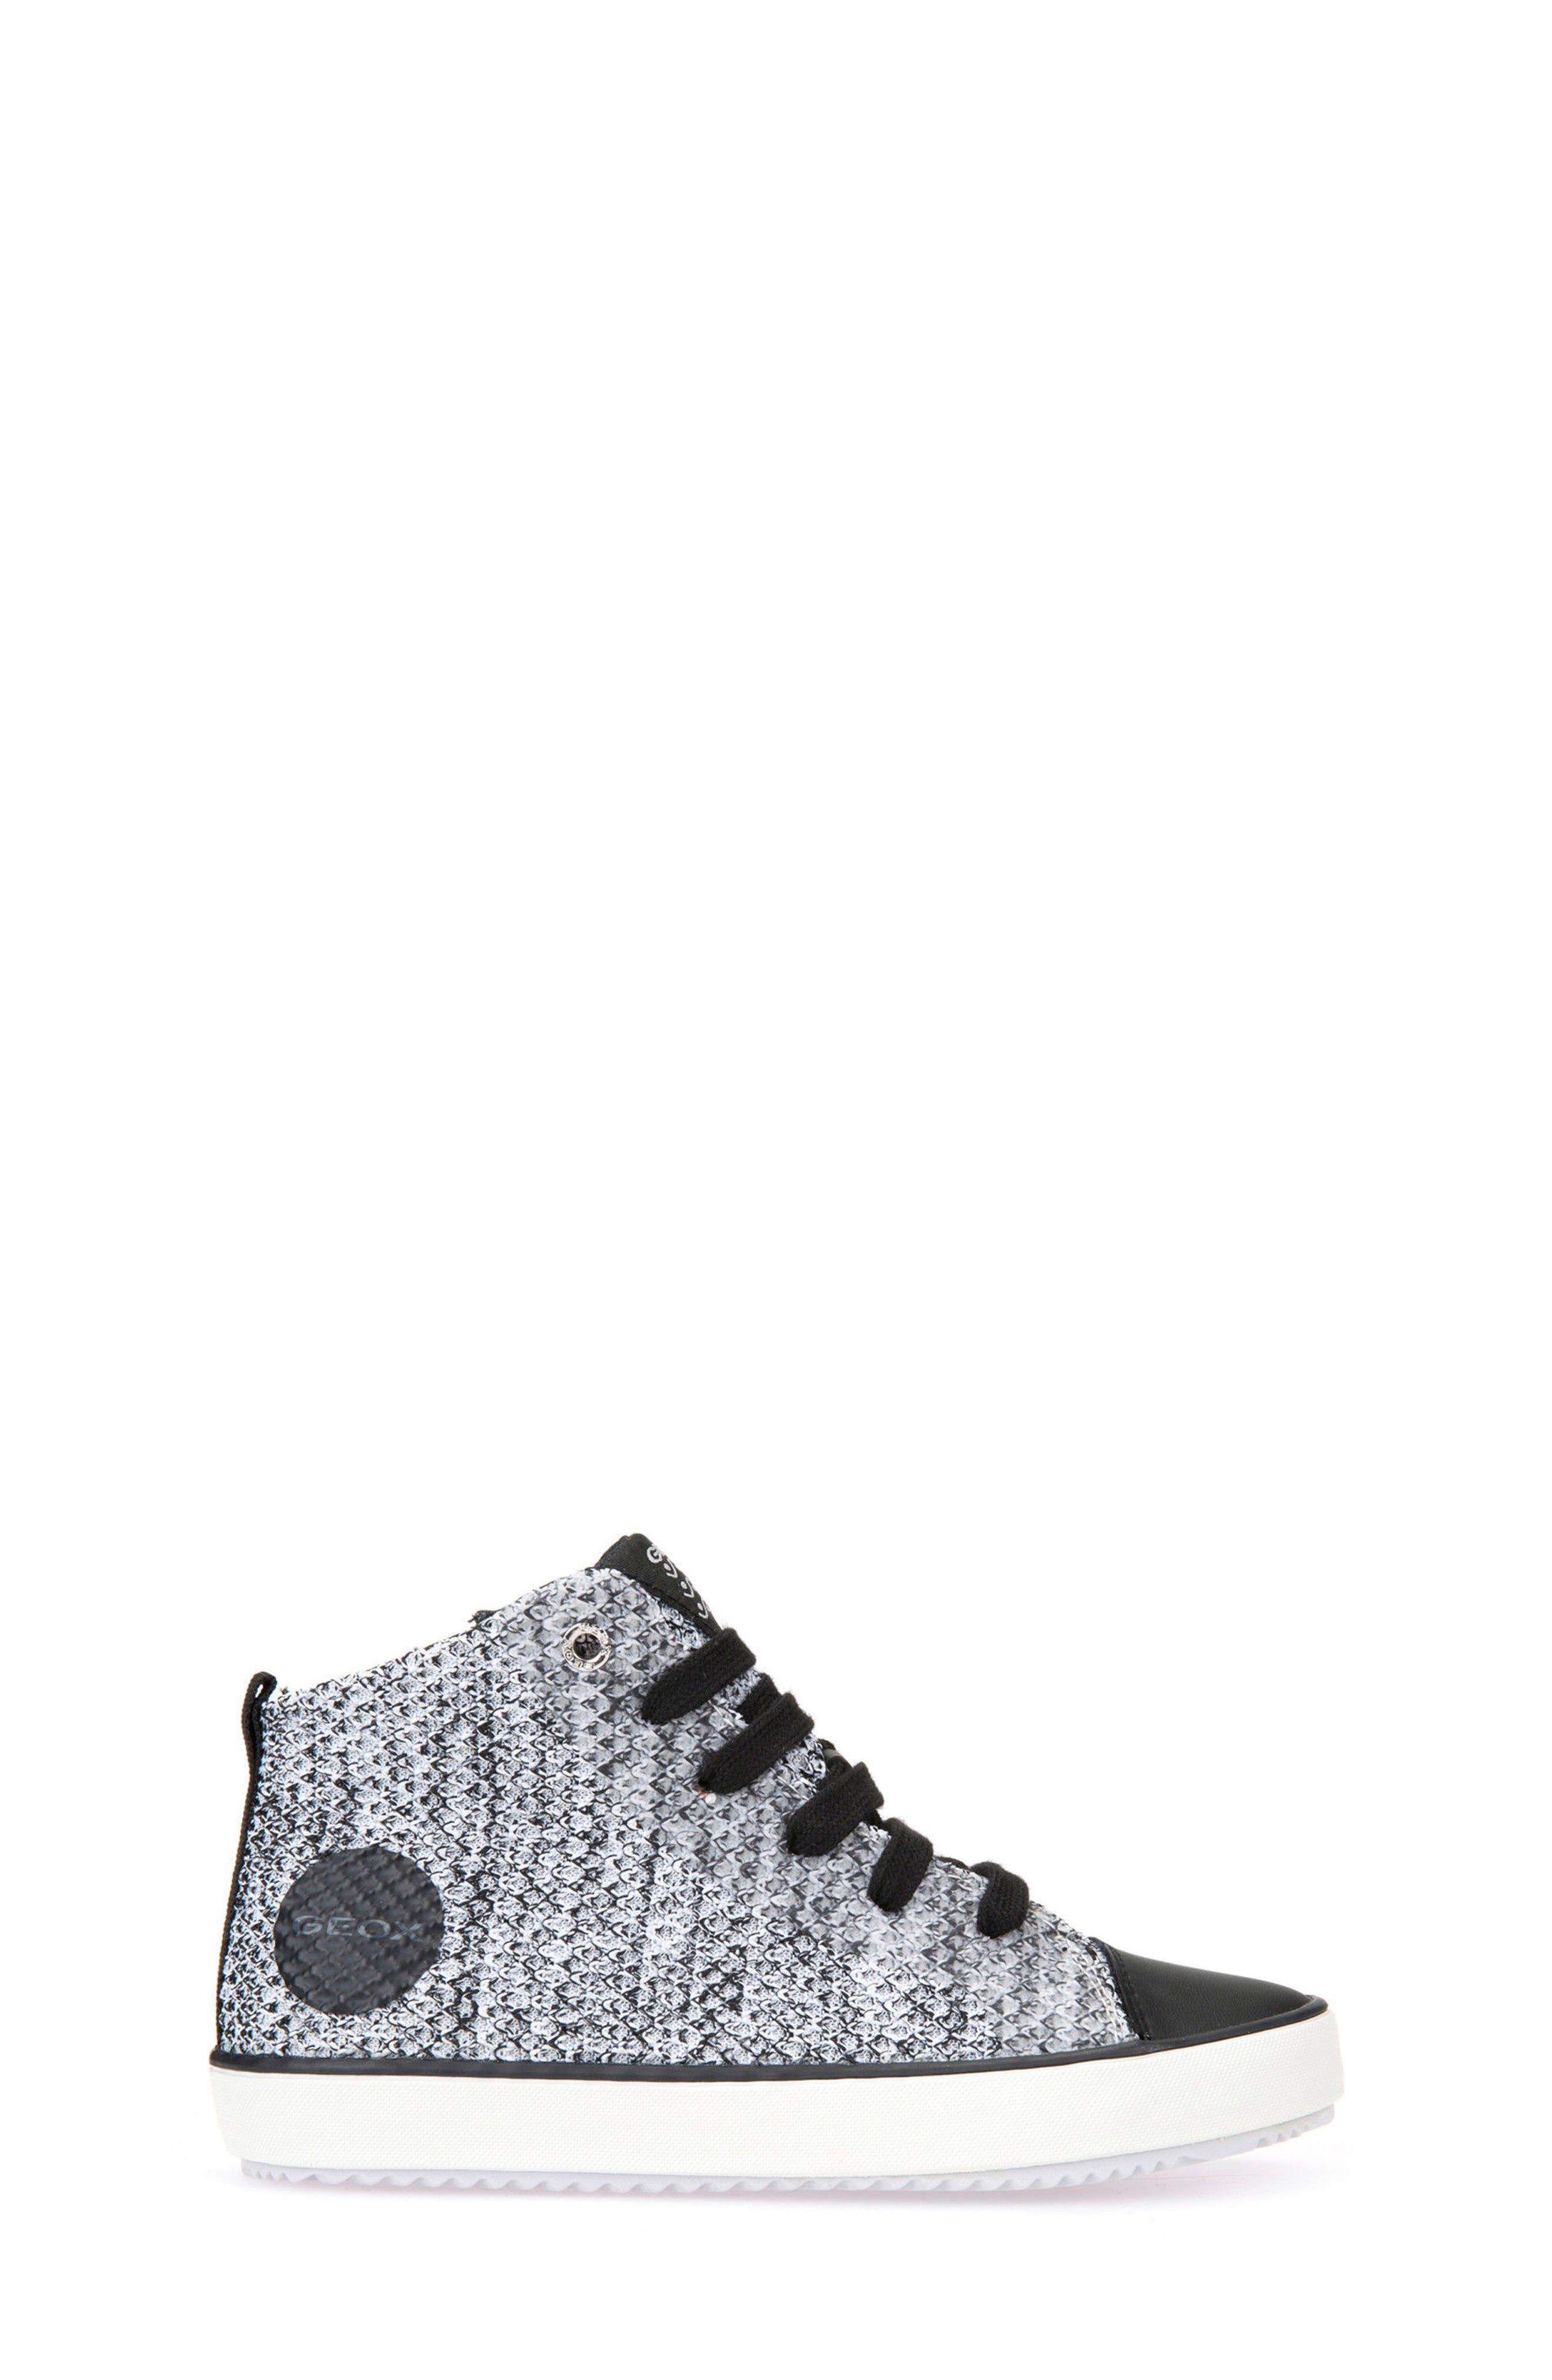 GEOX,                             Alonisso Knit Mid Top Sneaker,                             Alternate thumbnail 3, color,                             115